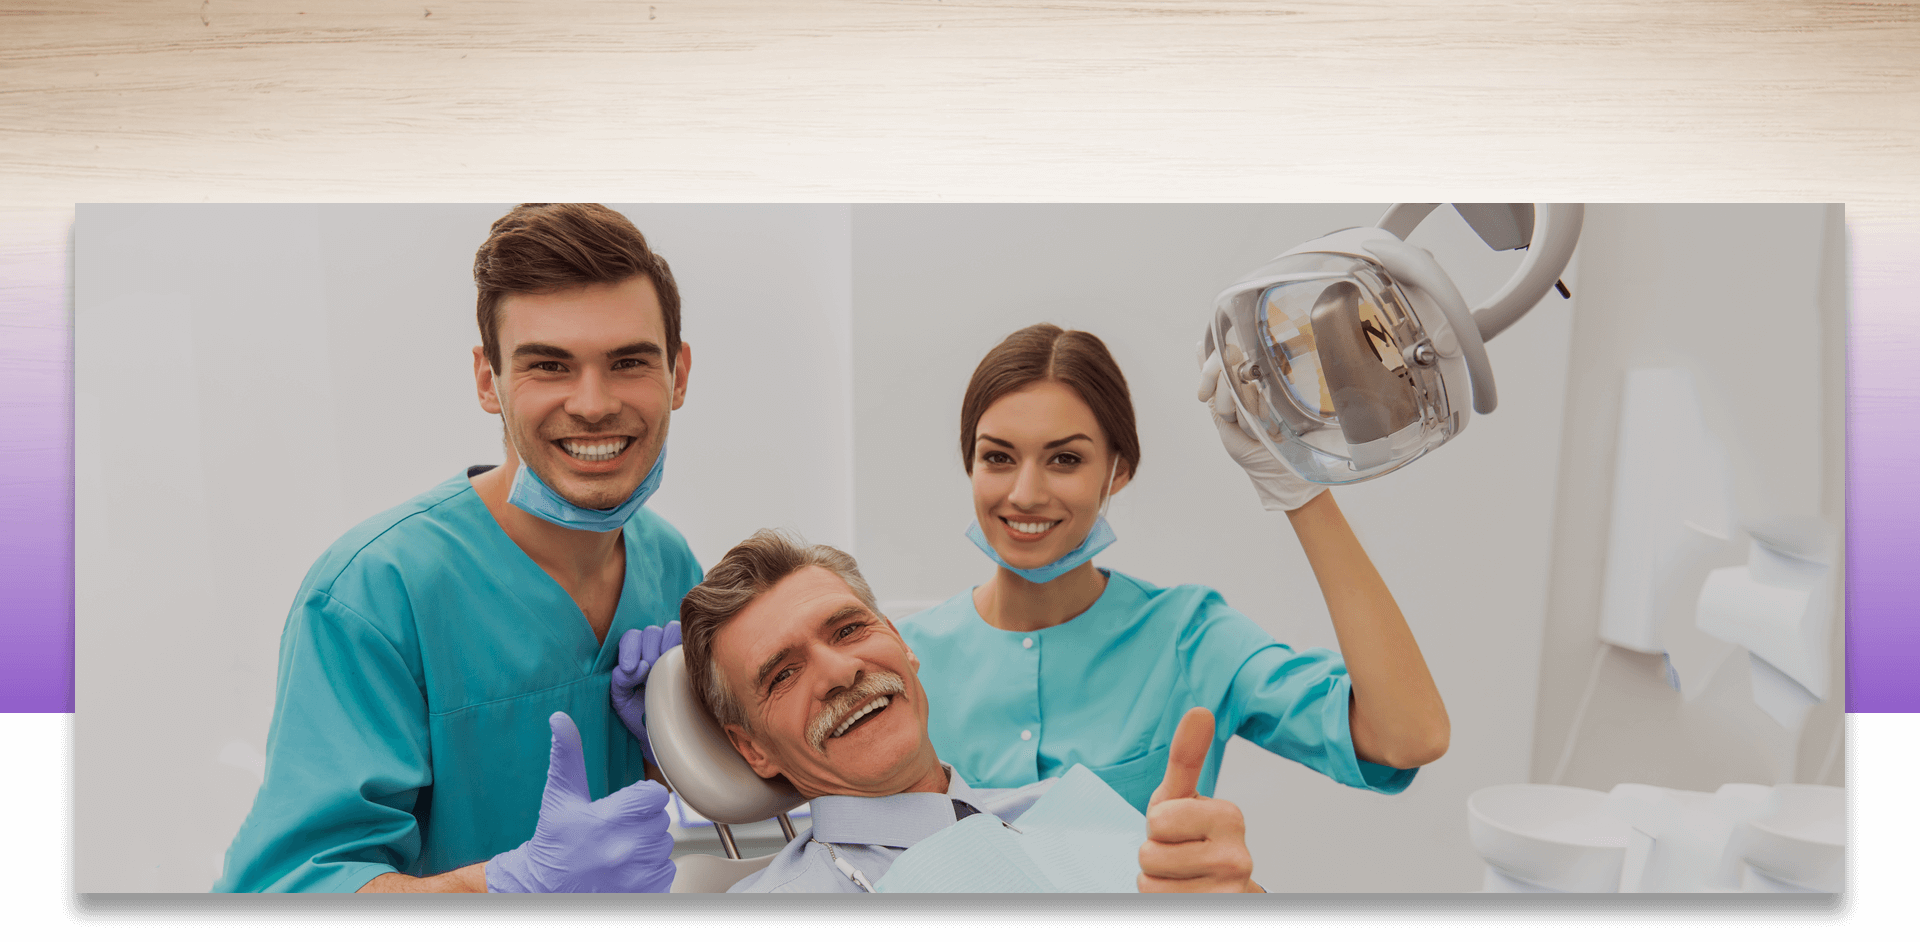 Dentist and patient showing thumbs up and assistant smiling at the camera